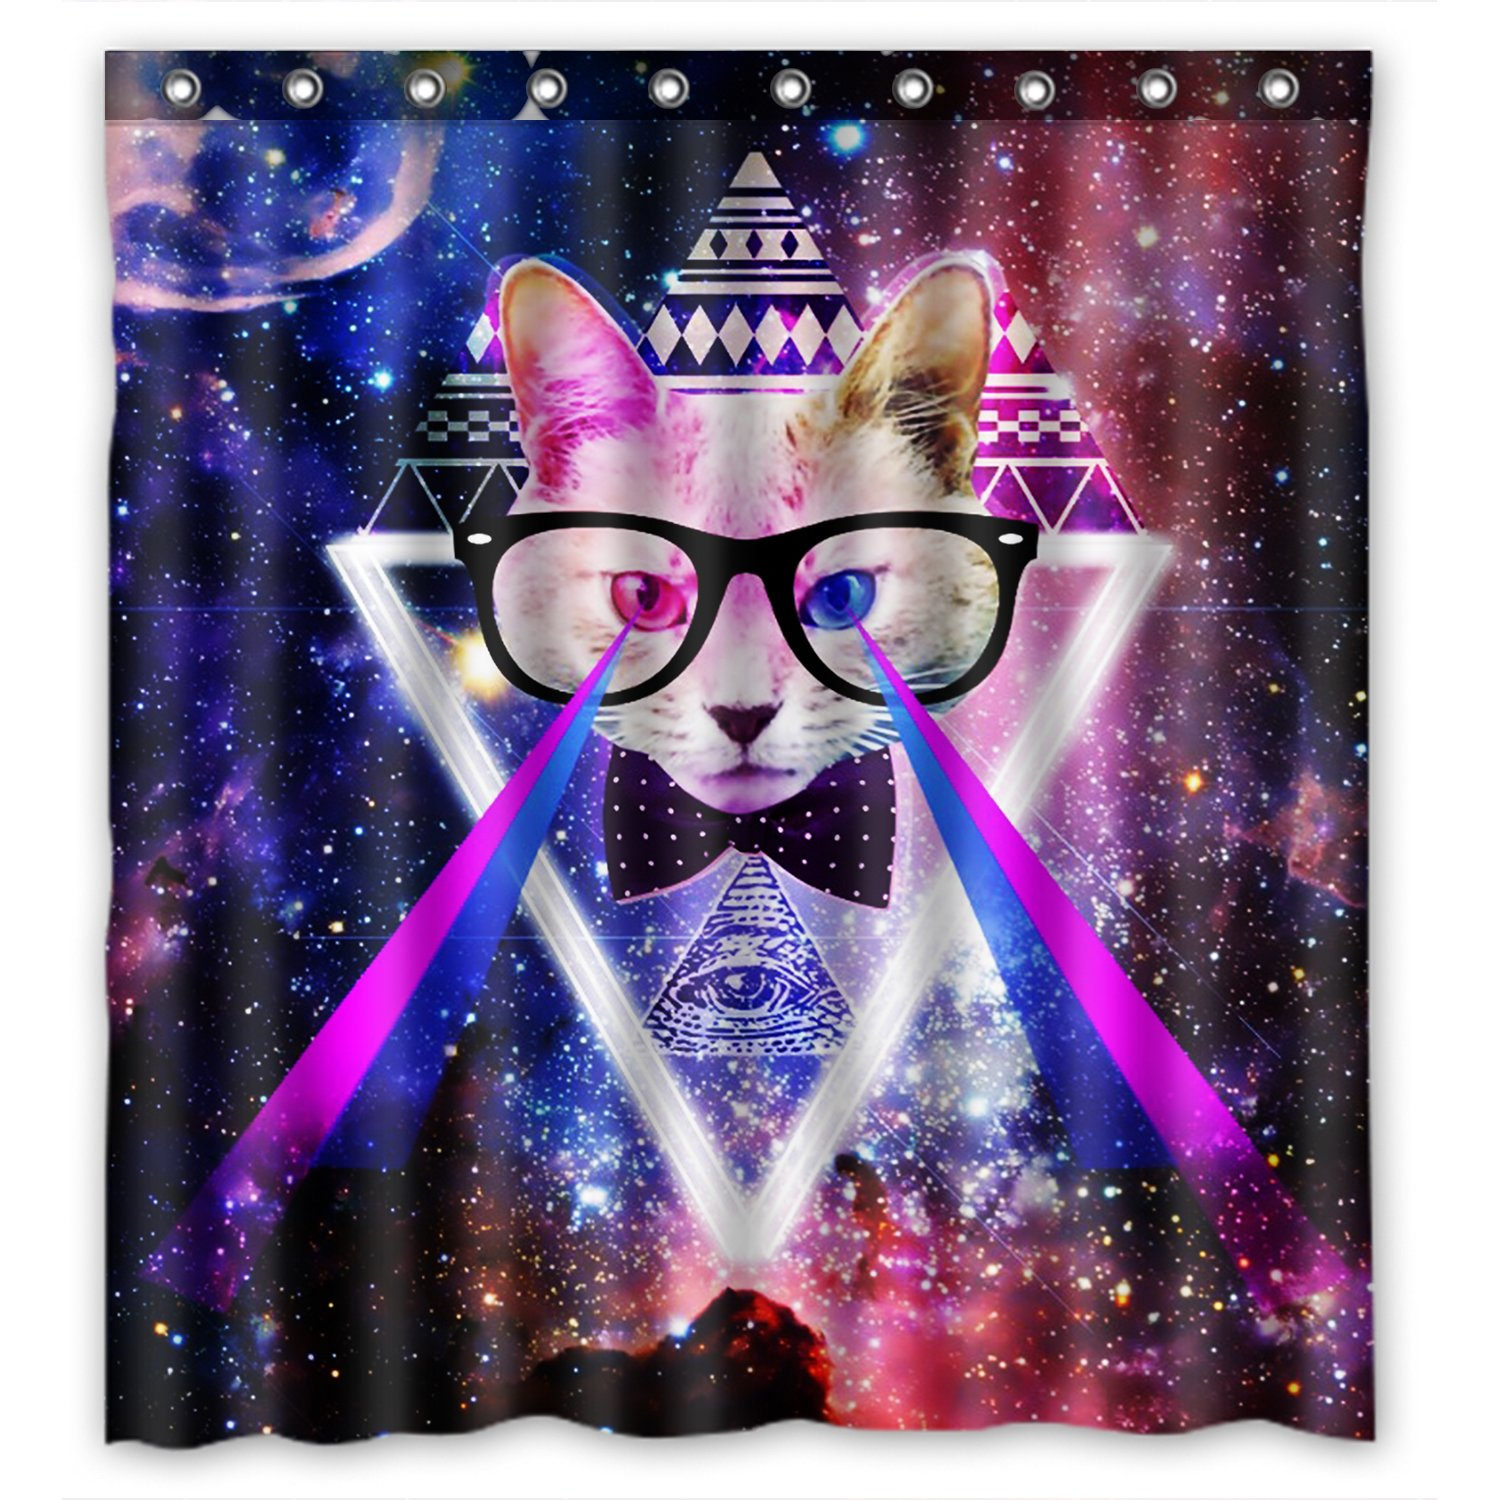 Amazon KXMDXA Space Cat Waterproof Polyester Shower Curtain 66x72 Inch Bathroom Decor Home Kitchen